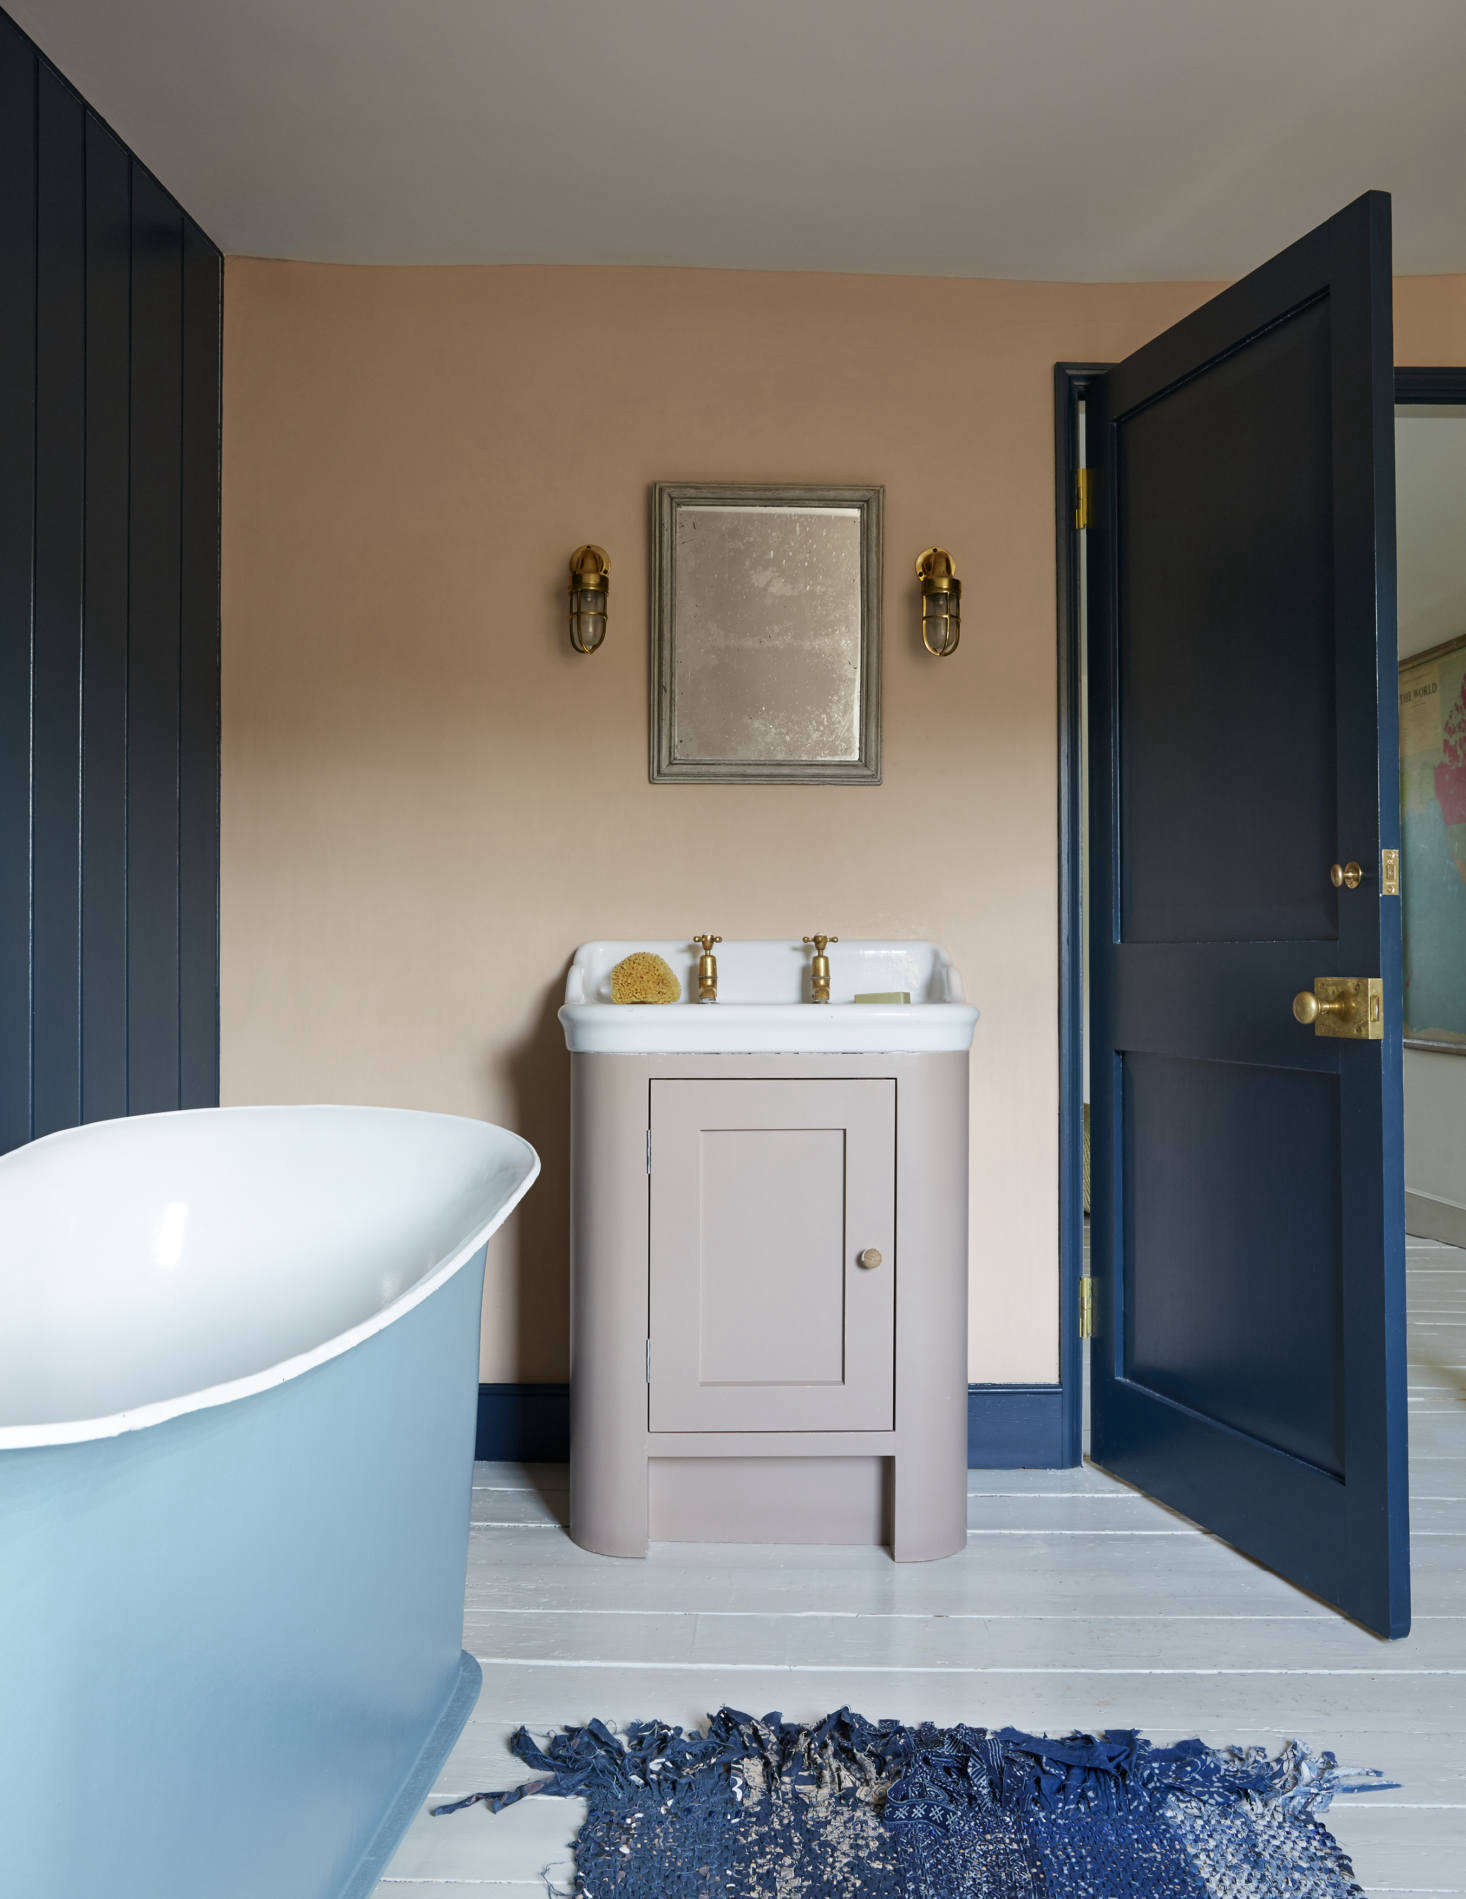 """The kids' bath features an Antique Cabinet Basin from The Water Monopolyand one of Harding's most inspired mix of colors: Farrow & Ball Setting Plaster on the walls, Hague Blue on the woodwork, and Smoked Trout on the washstand How did she come up with these? """"Just a gut feel. I love dreaming up soulful combinations."""""""